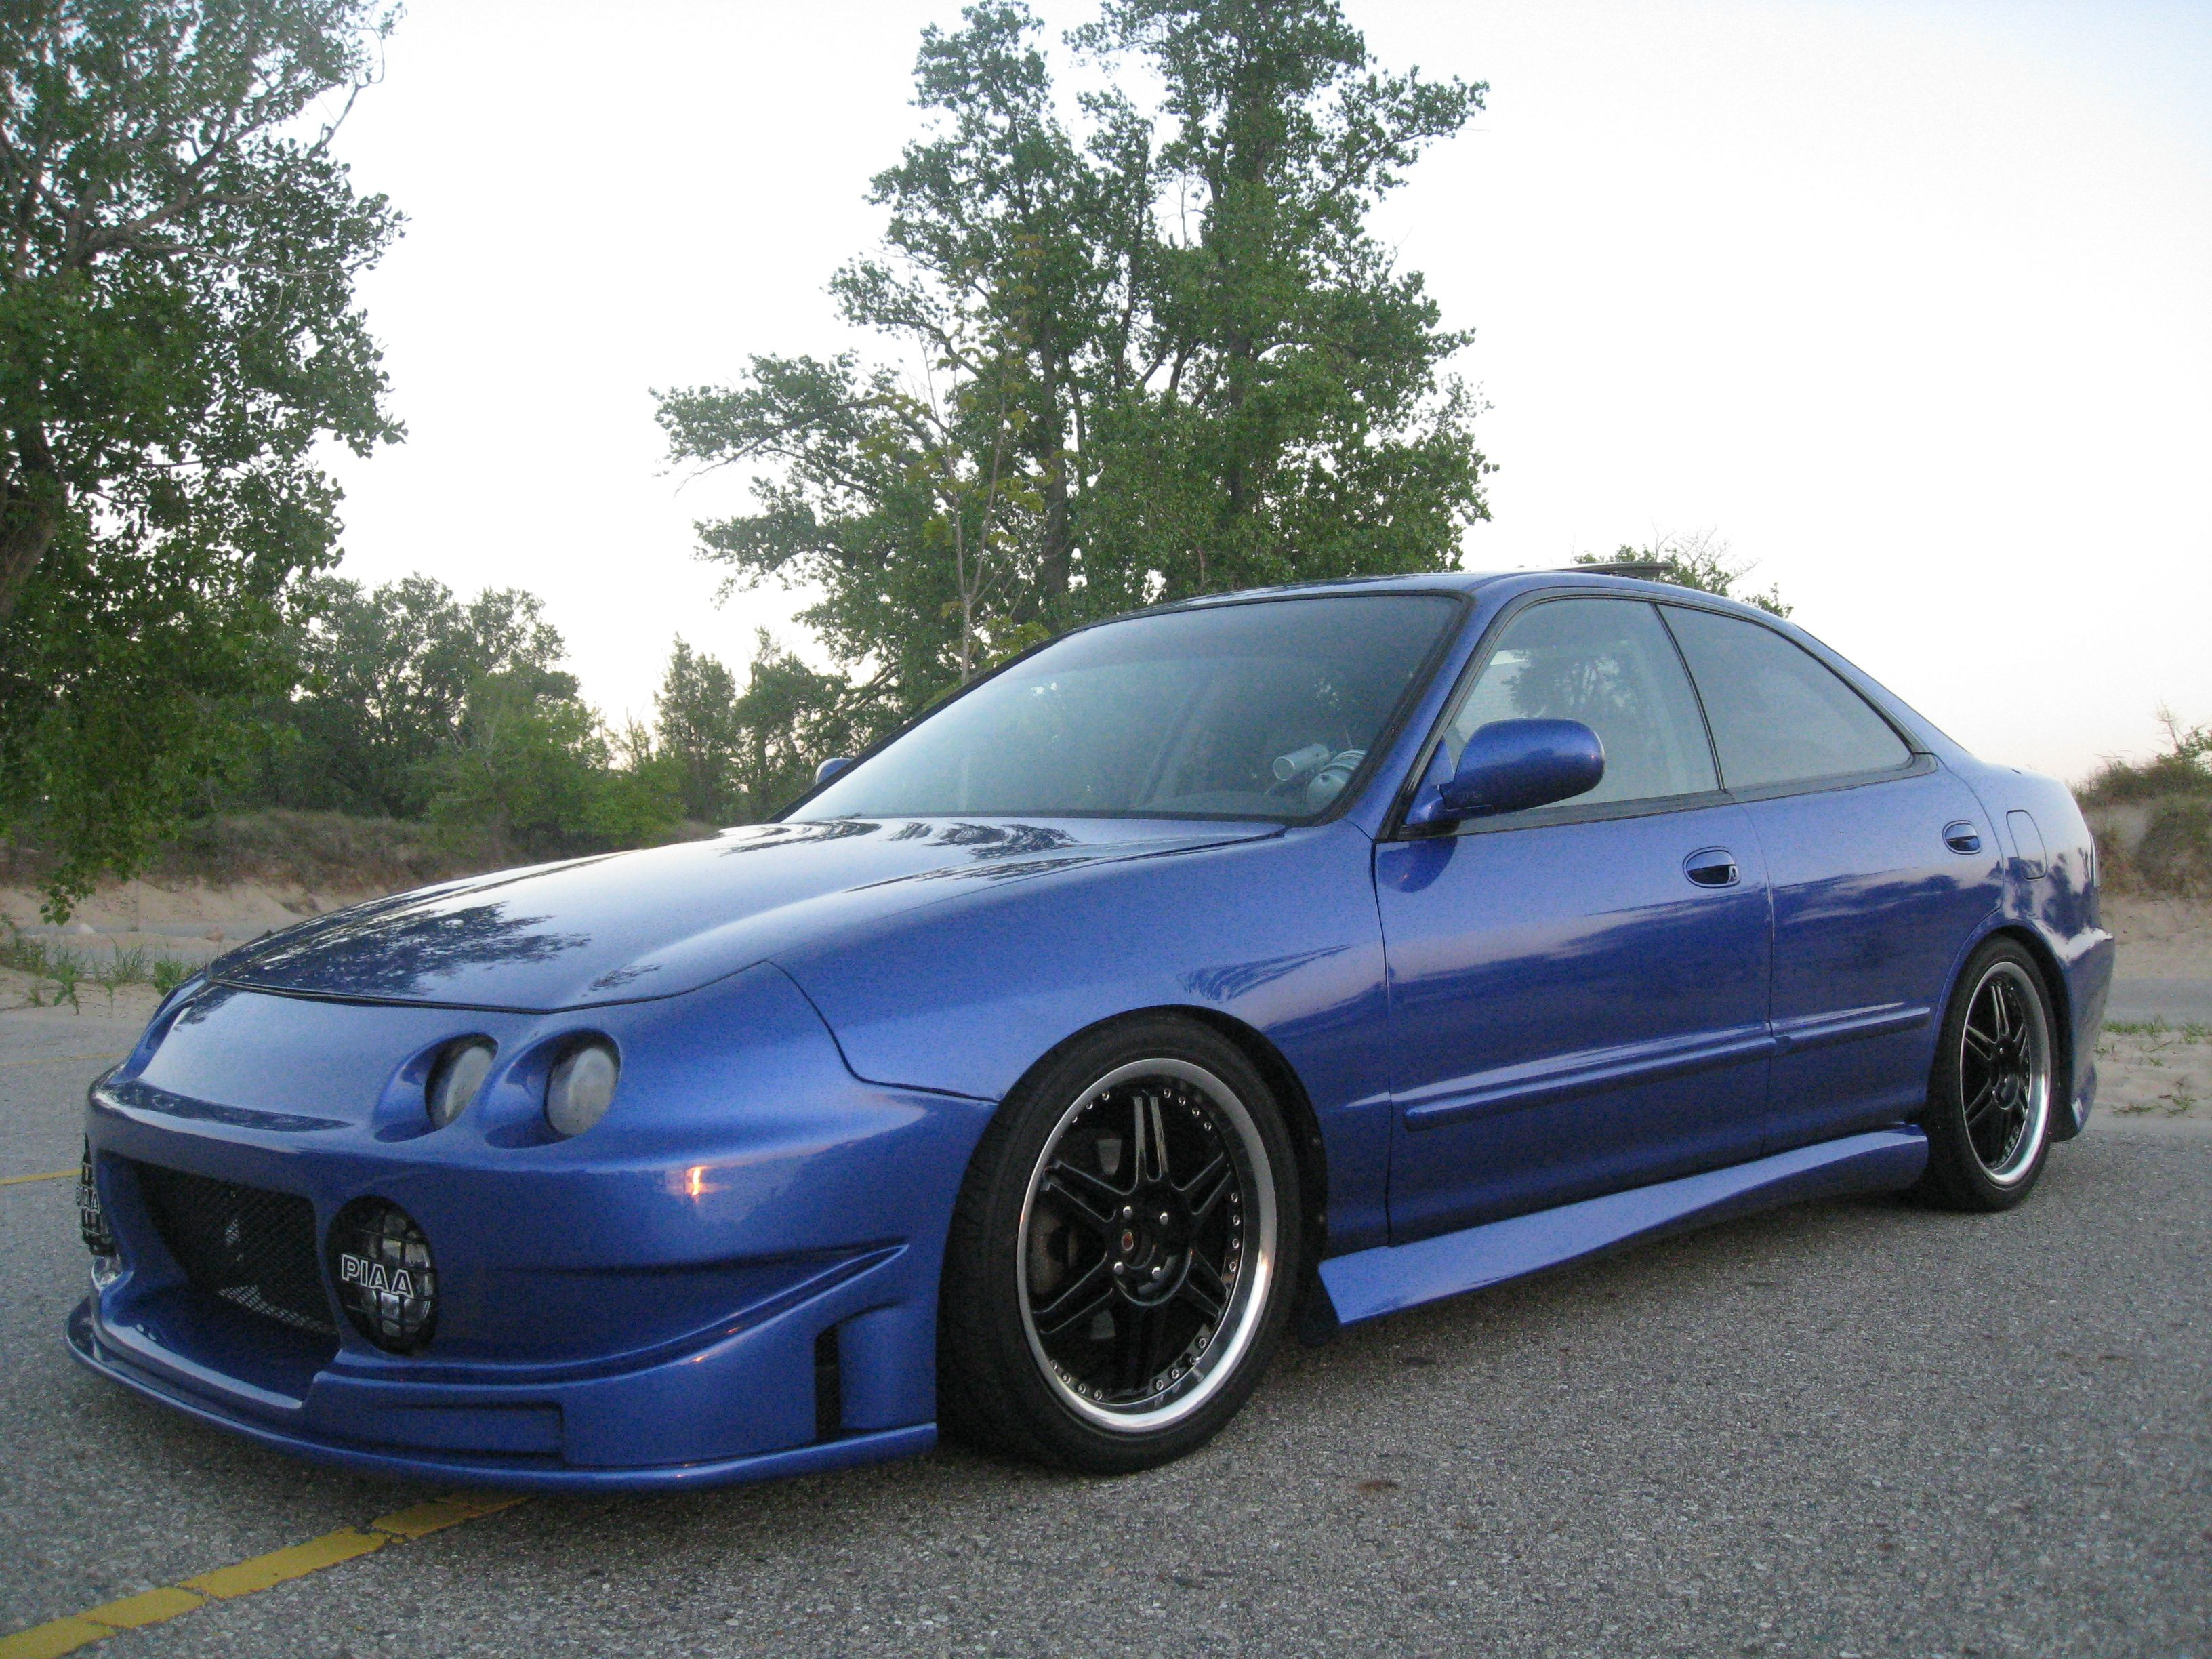 My Old 96 Integra Gsr My Dream Car Tuner Cars Dream Cars